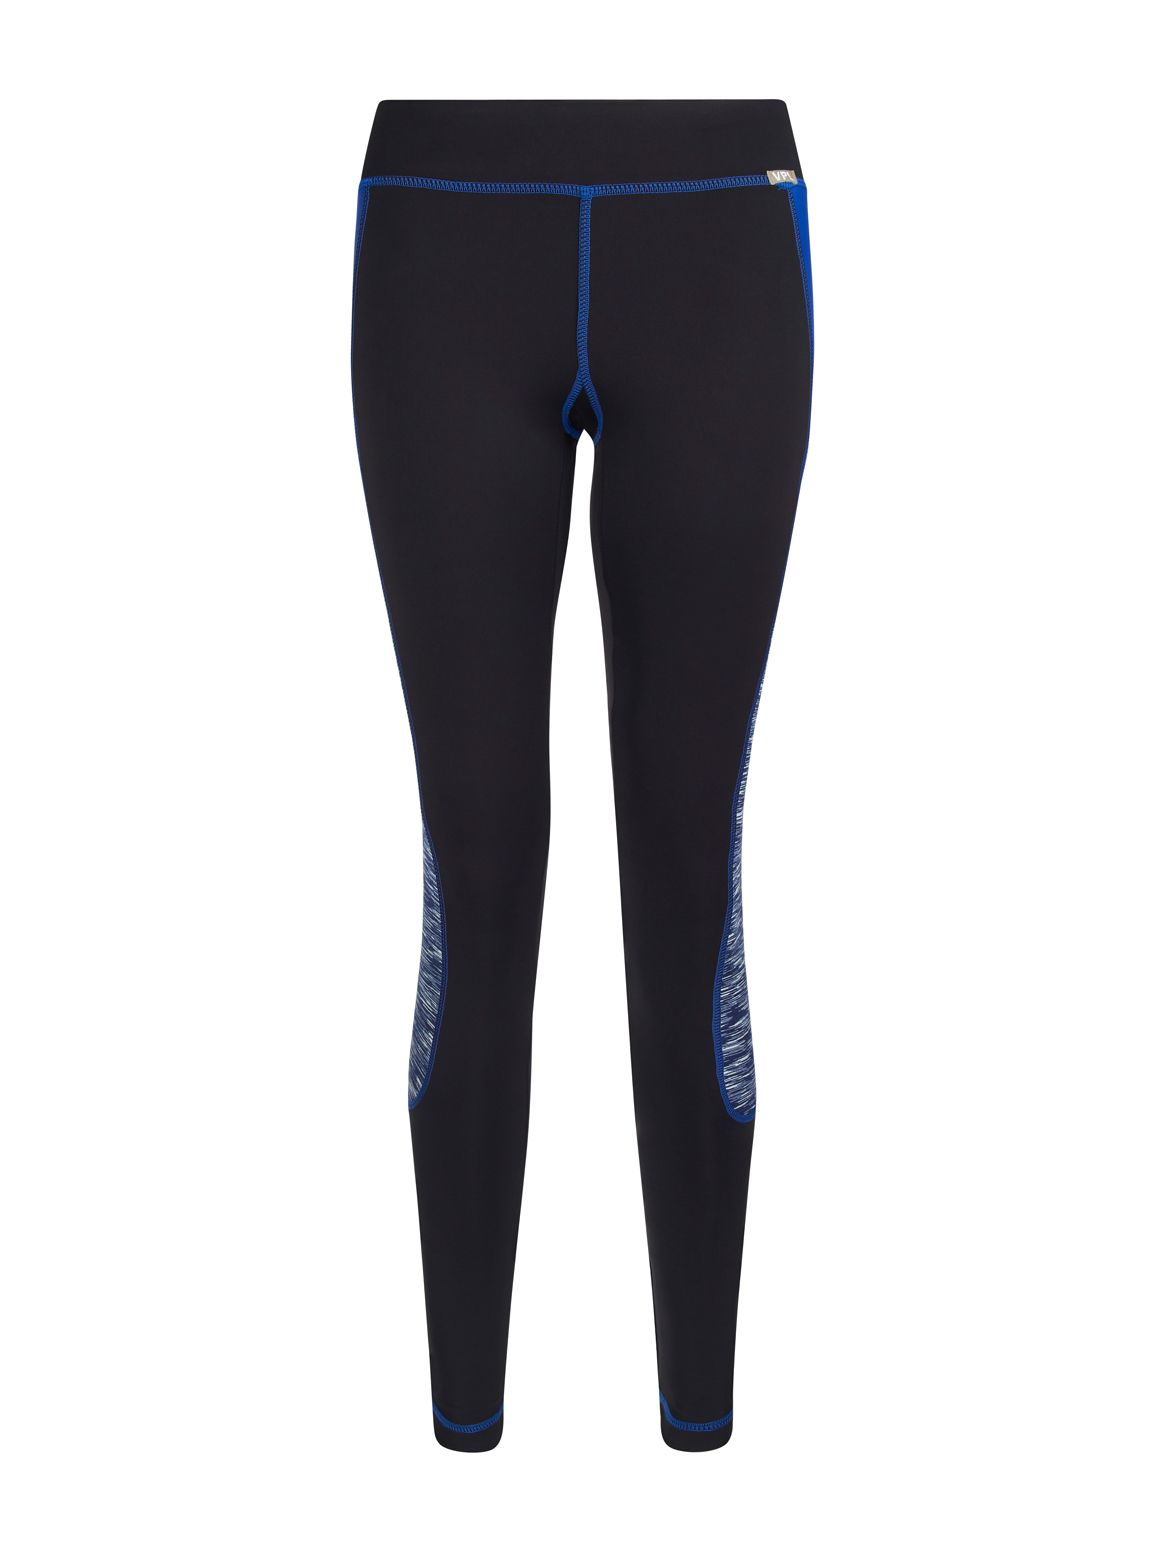 VPL Spacedye Navy X-Curvate leggings from Fashercise